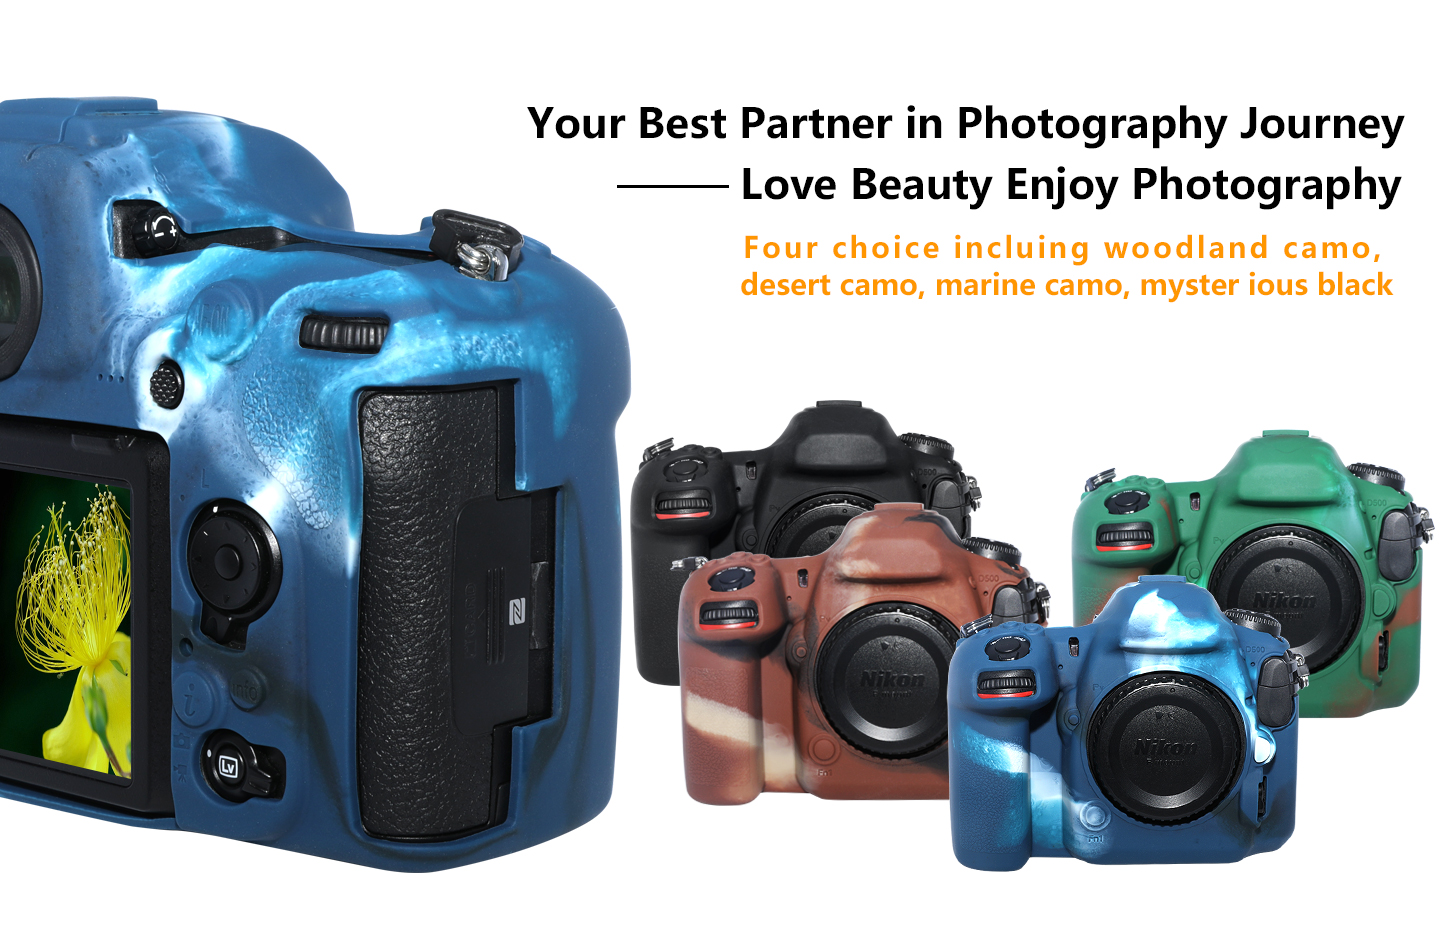 Your Best Partner in Photography Journey